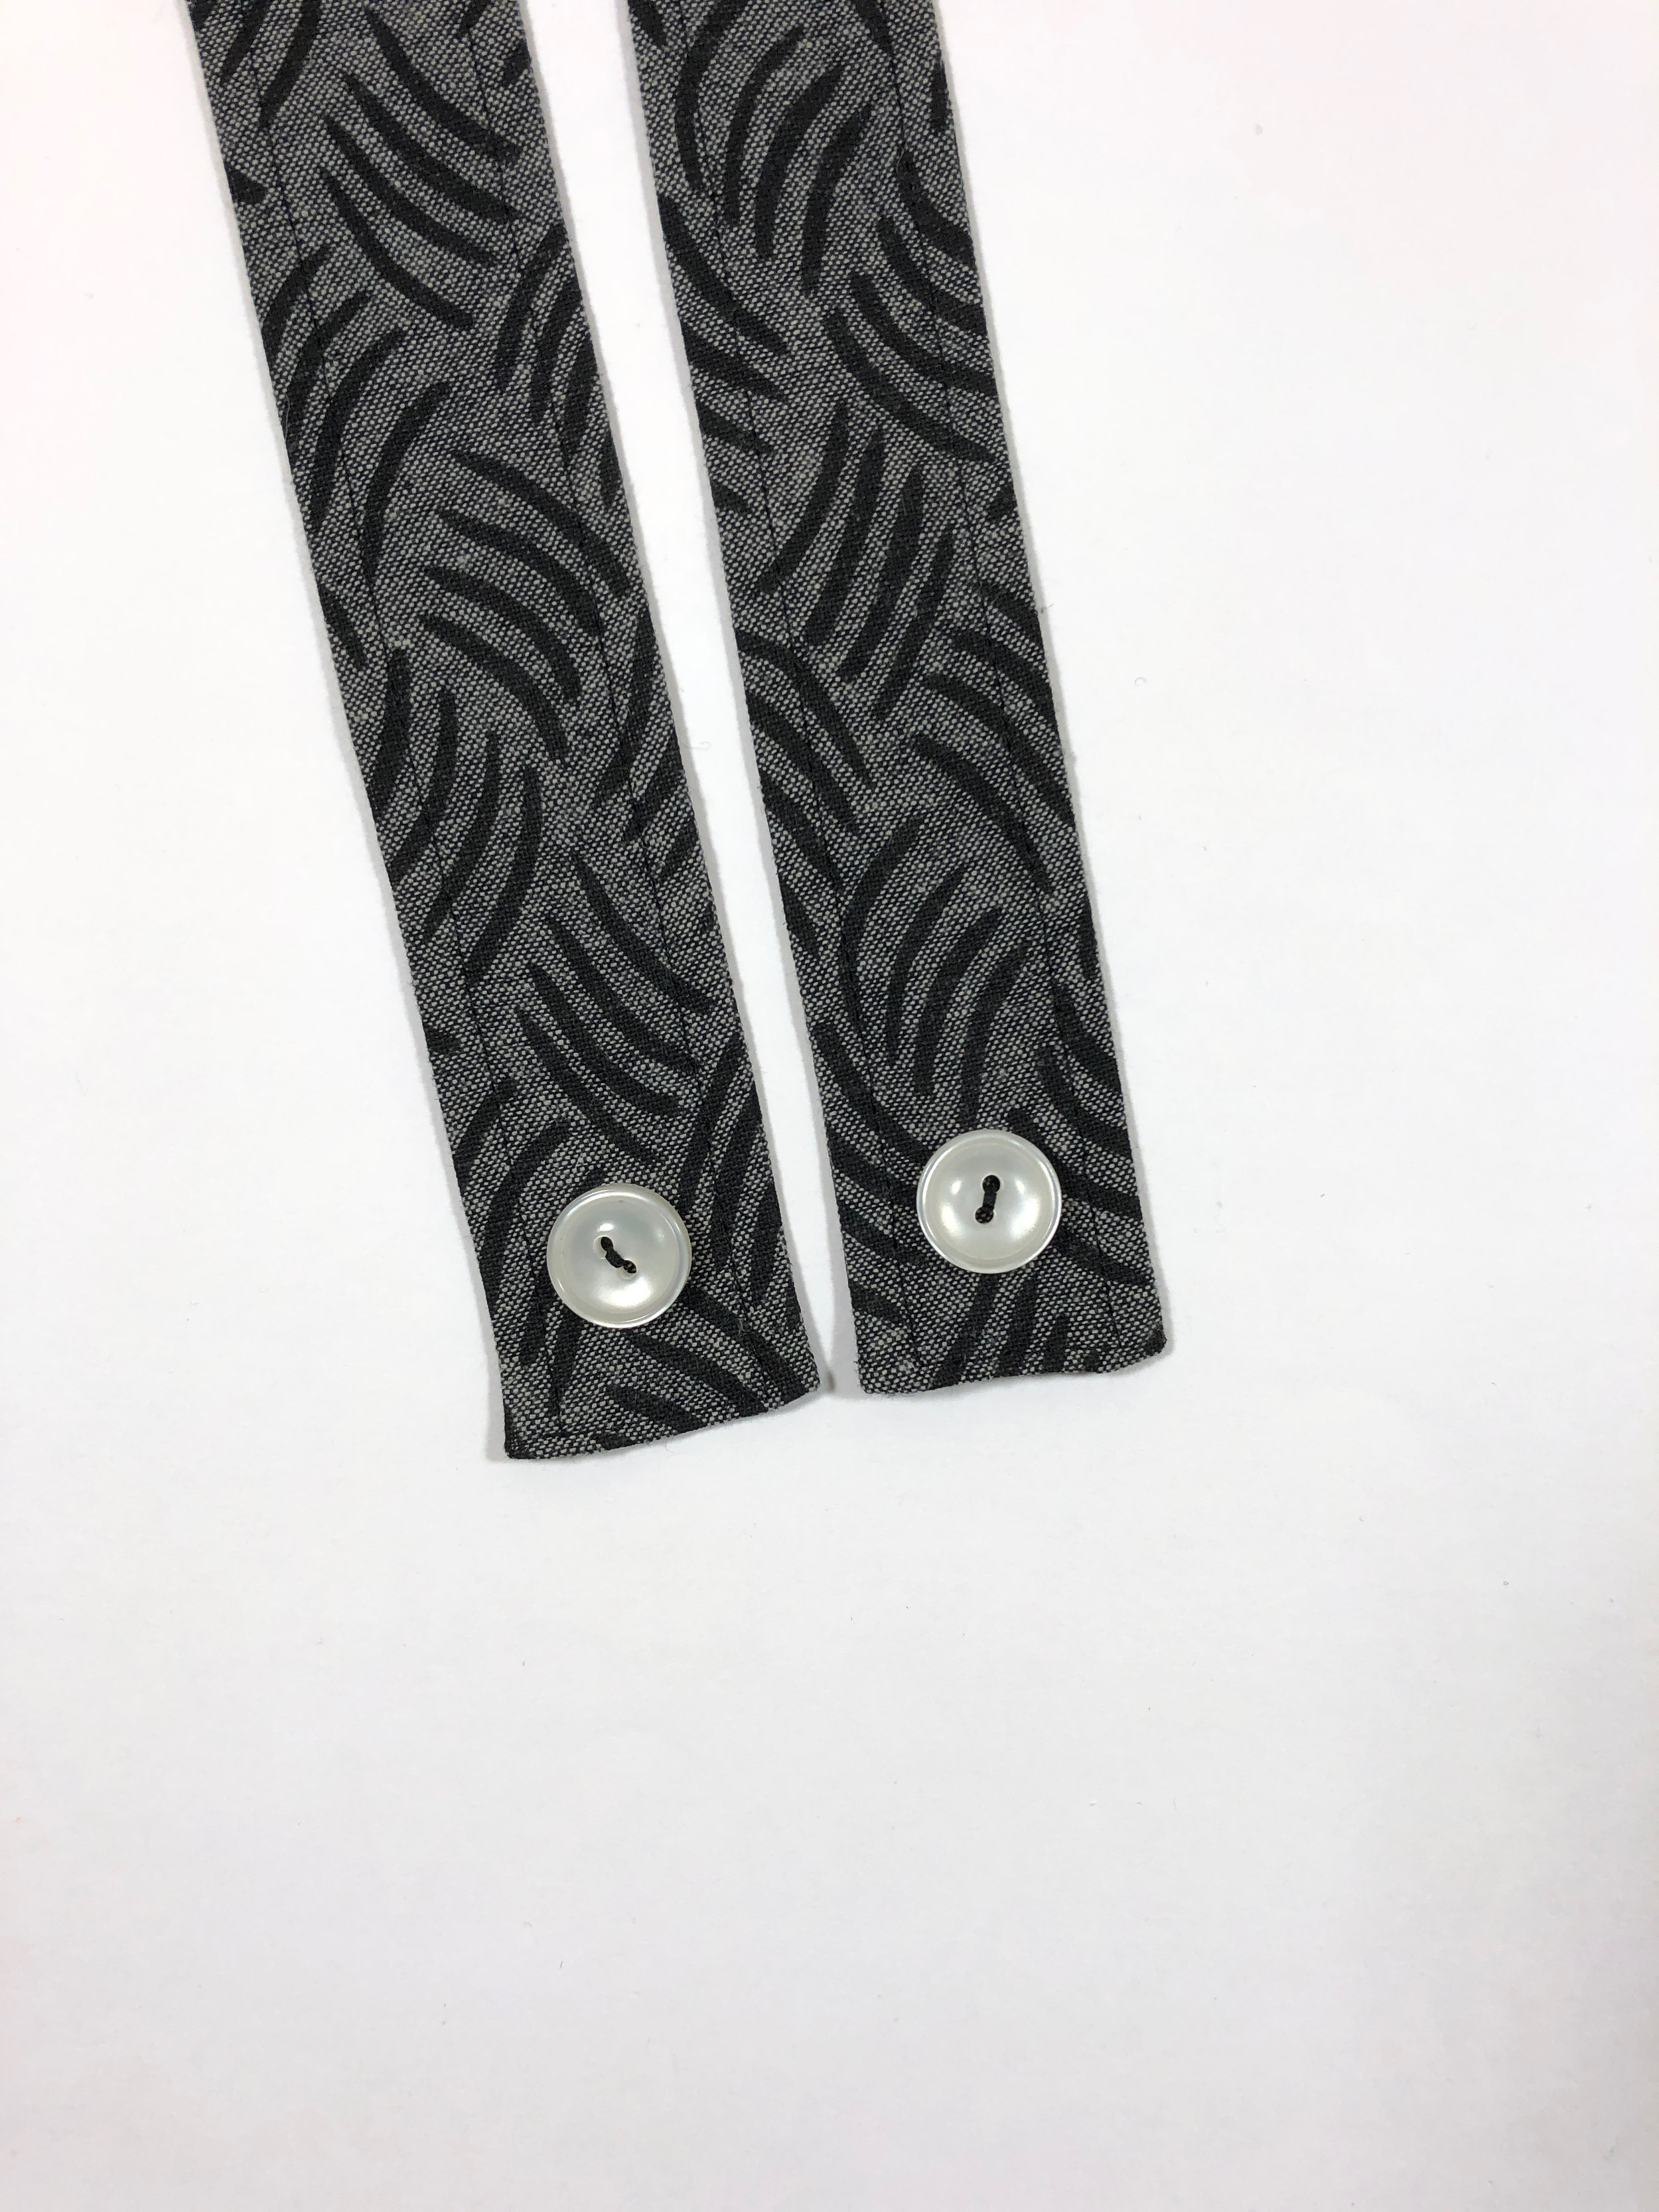 """64. Sew buttons to the straps 1"""" from the bottom edge, and centered."""